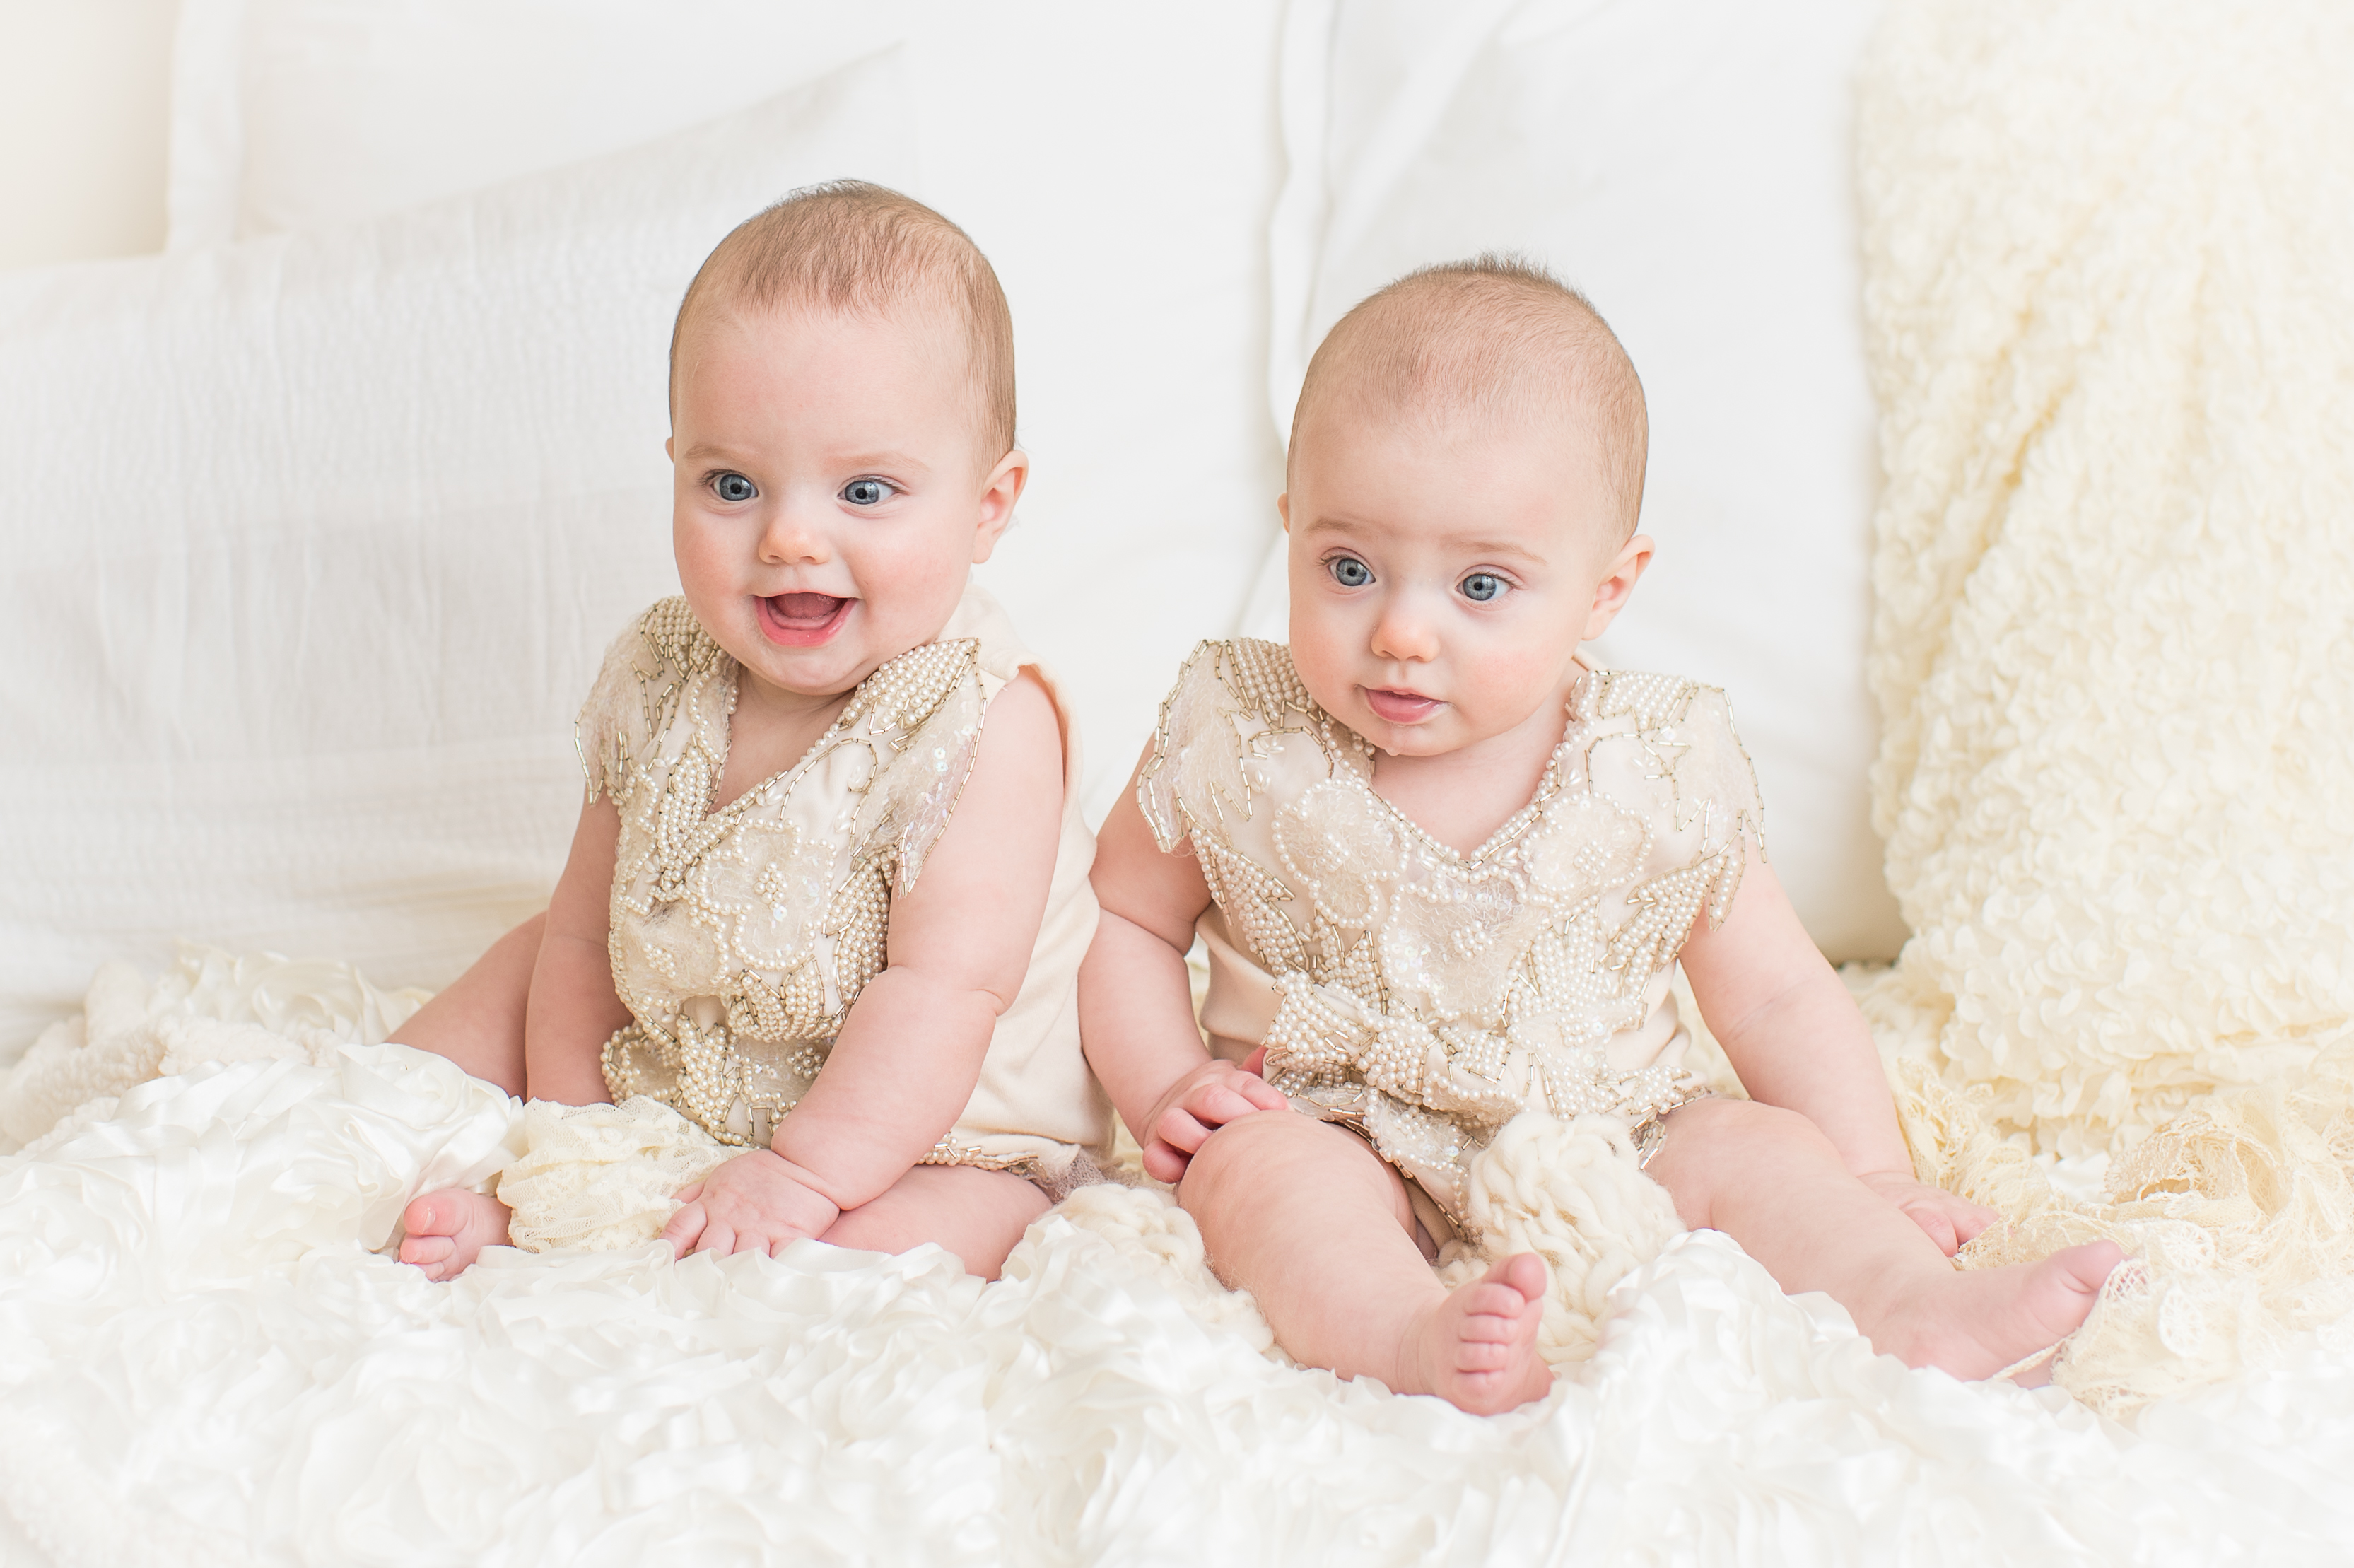 Pittsburgh Twin Baby Photographer. Newborn multiples photographer Jules Bradley is Pittsburgh